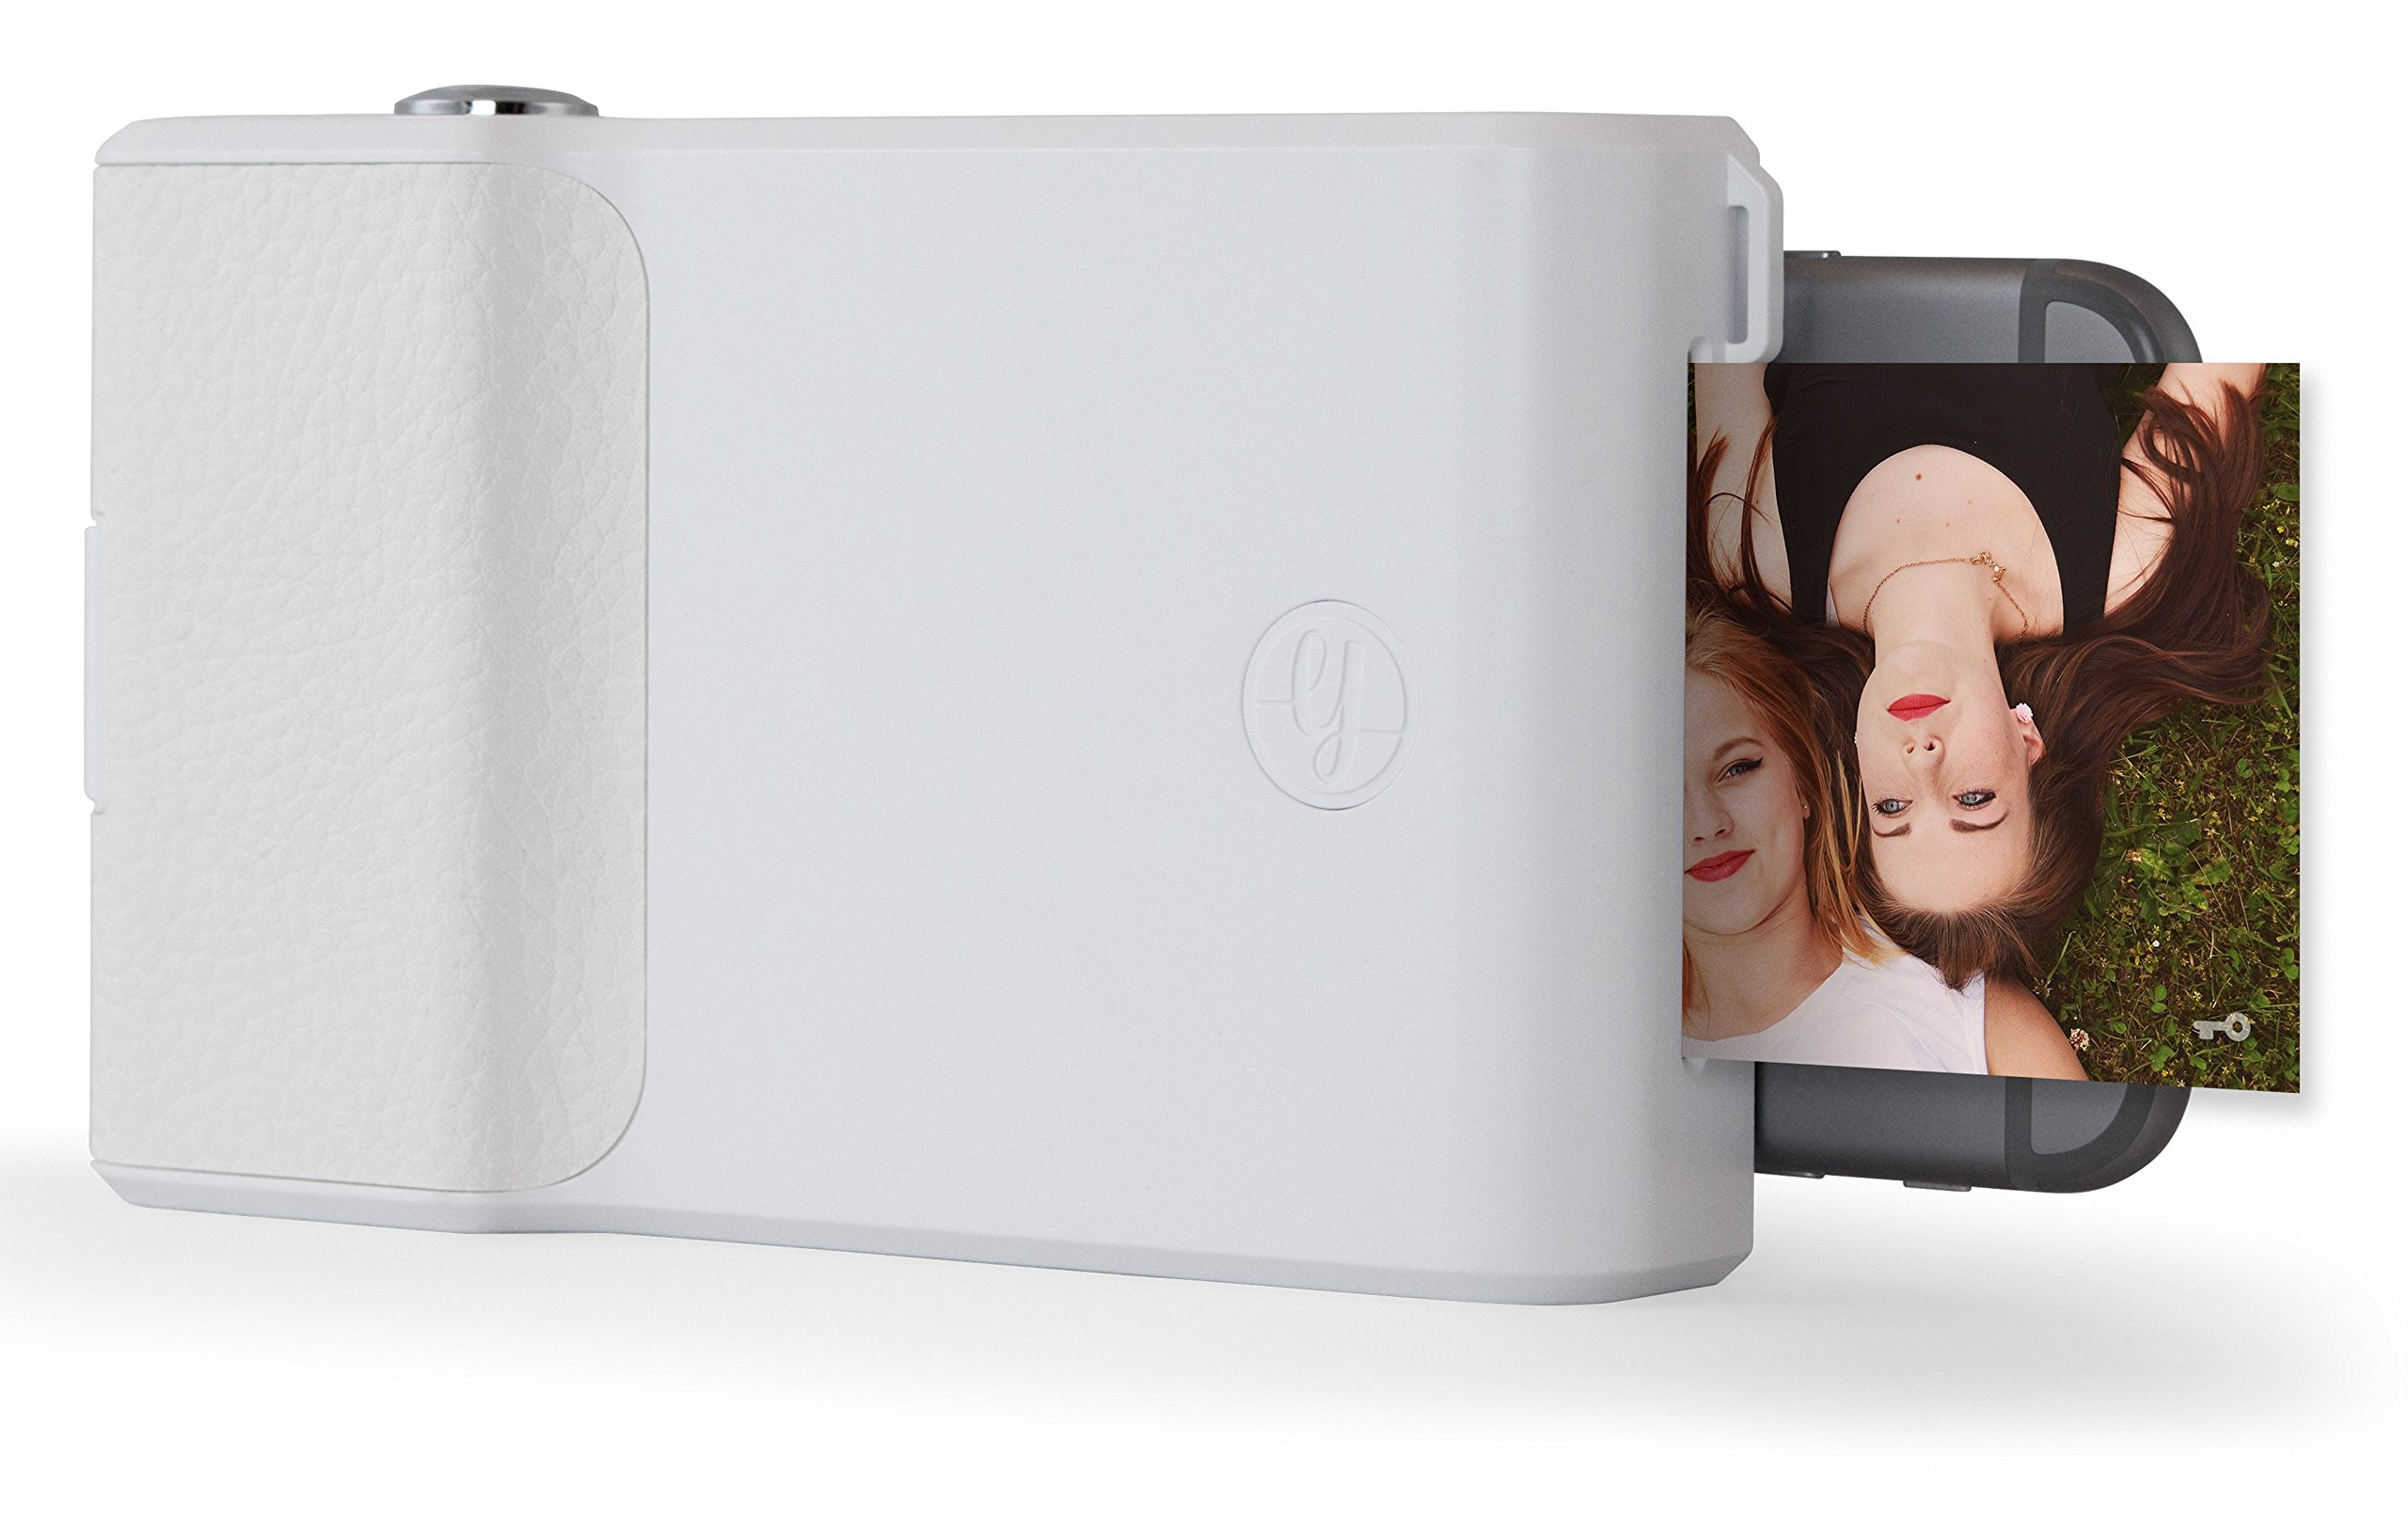 Prynt PW200003-WH Get Instant Photo Prints with The Prynt Case for iPhone 6 / 6s  - White by Prynt